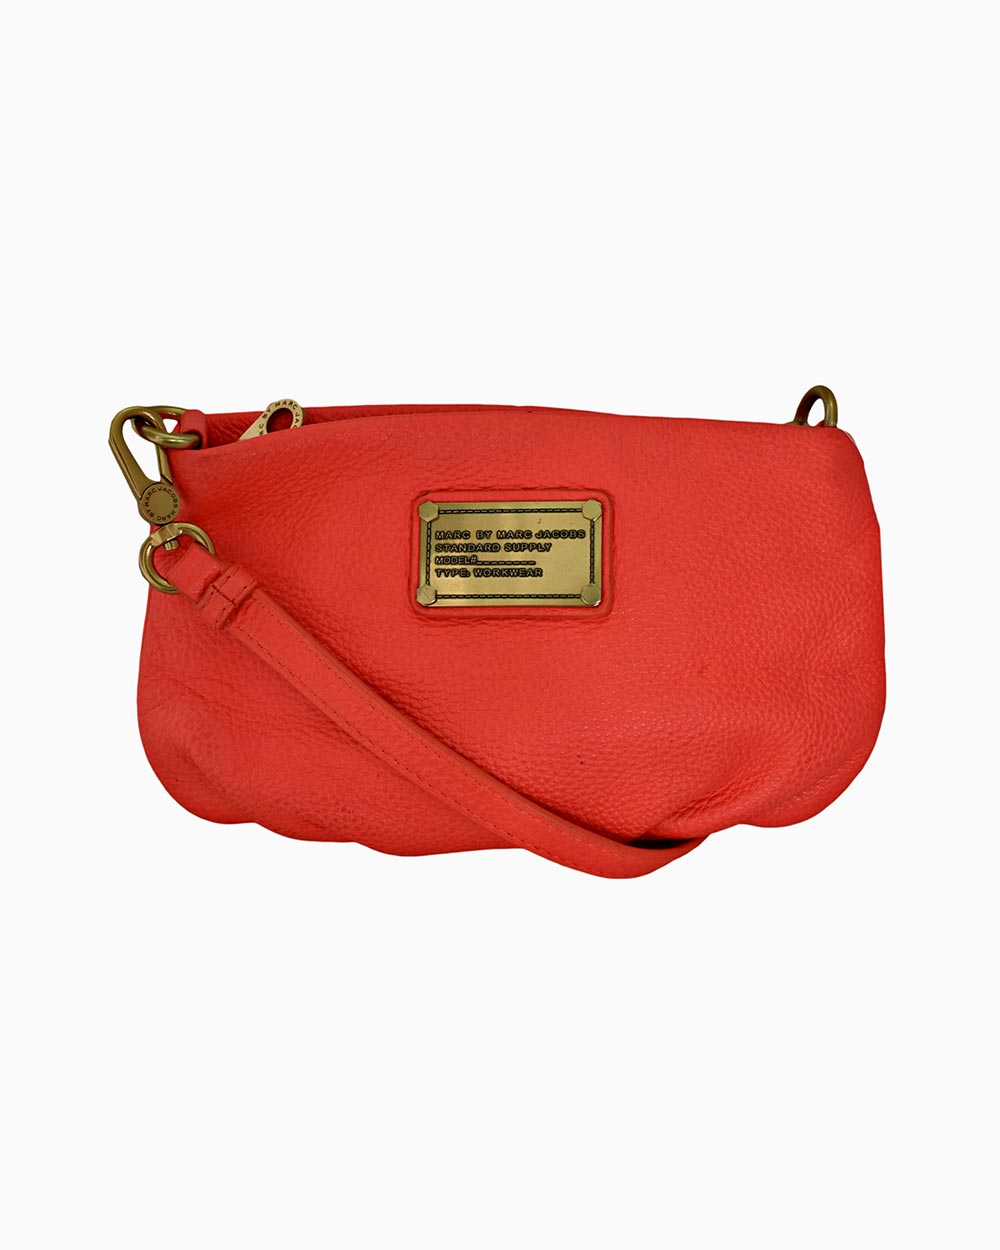 Bolsa Marc by Marc Jacobs Coral Neon